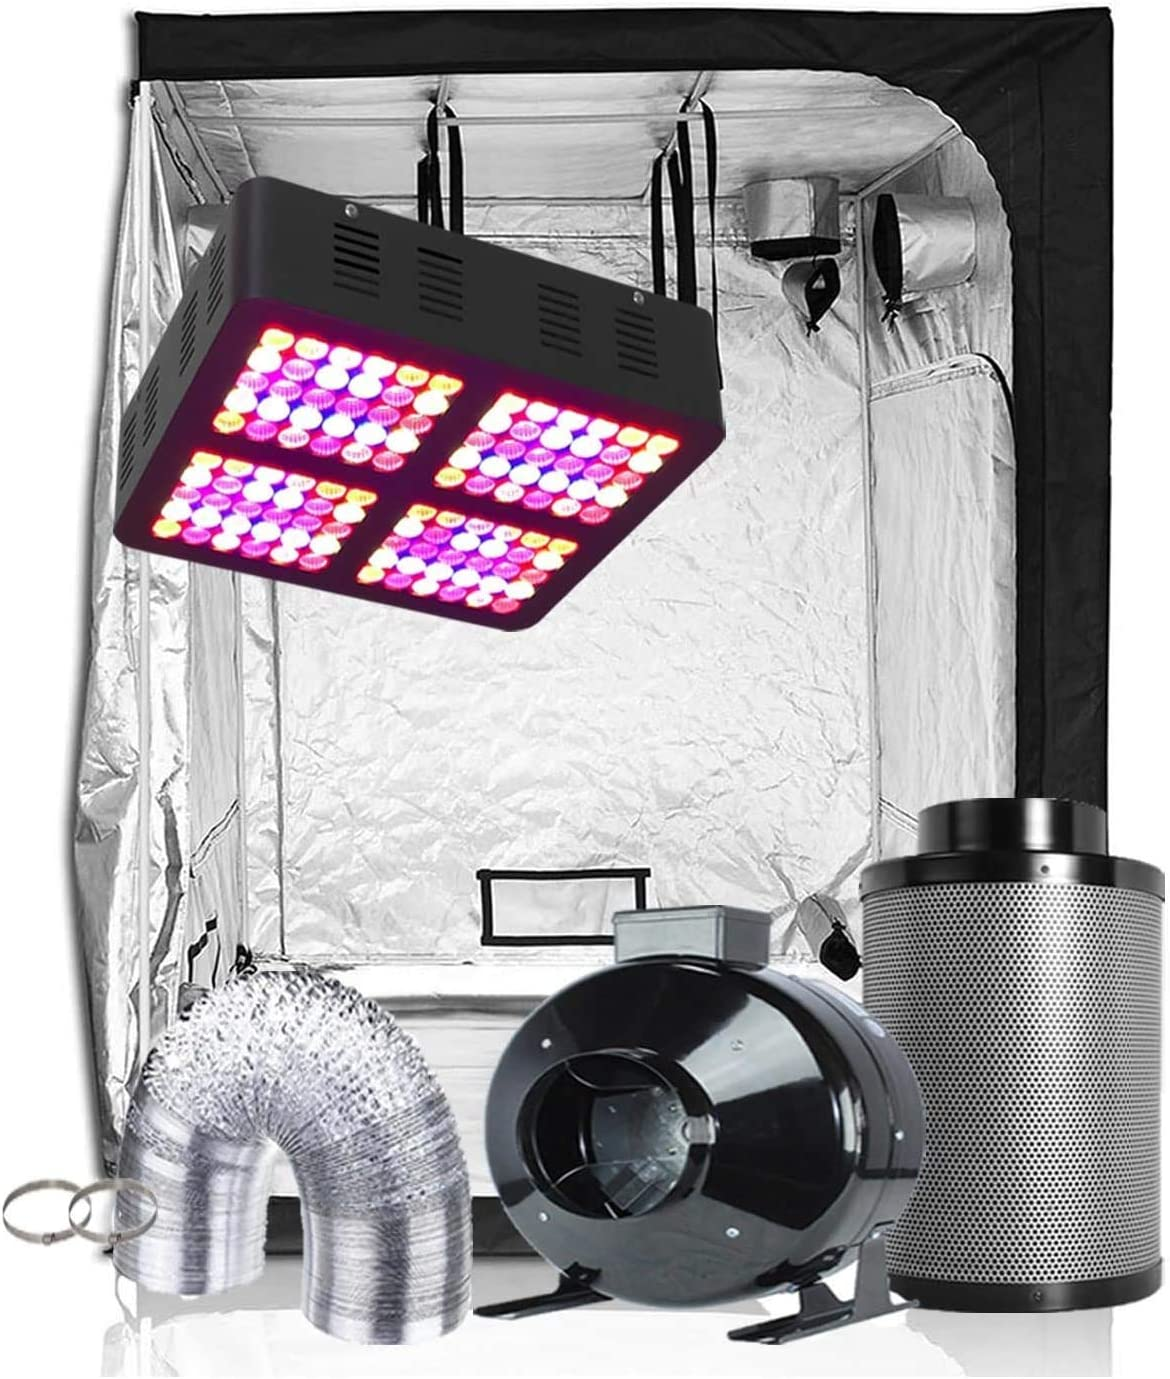 Oppolite LED Grow Light Tent Kit Hydroponic Growing System LED600W Grow Light 6 Carbon Filter Combo 60 X60 X80 Grow Tent